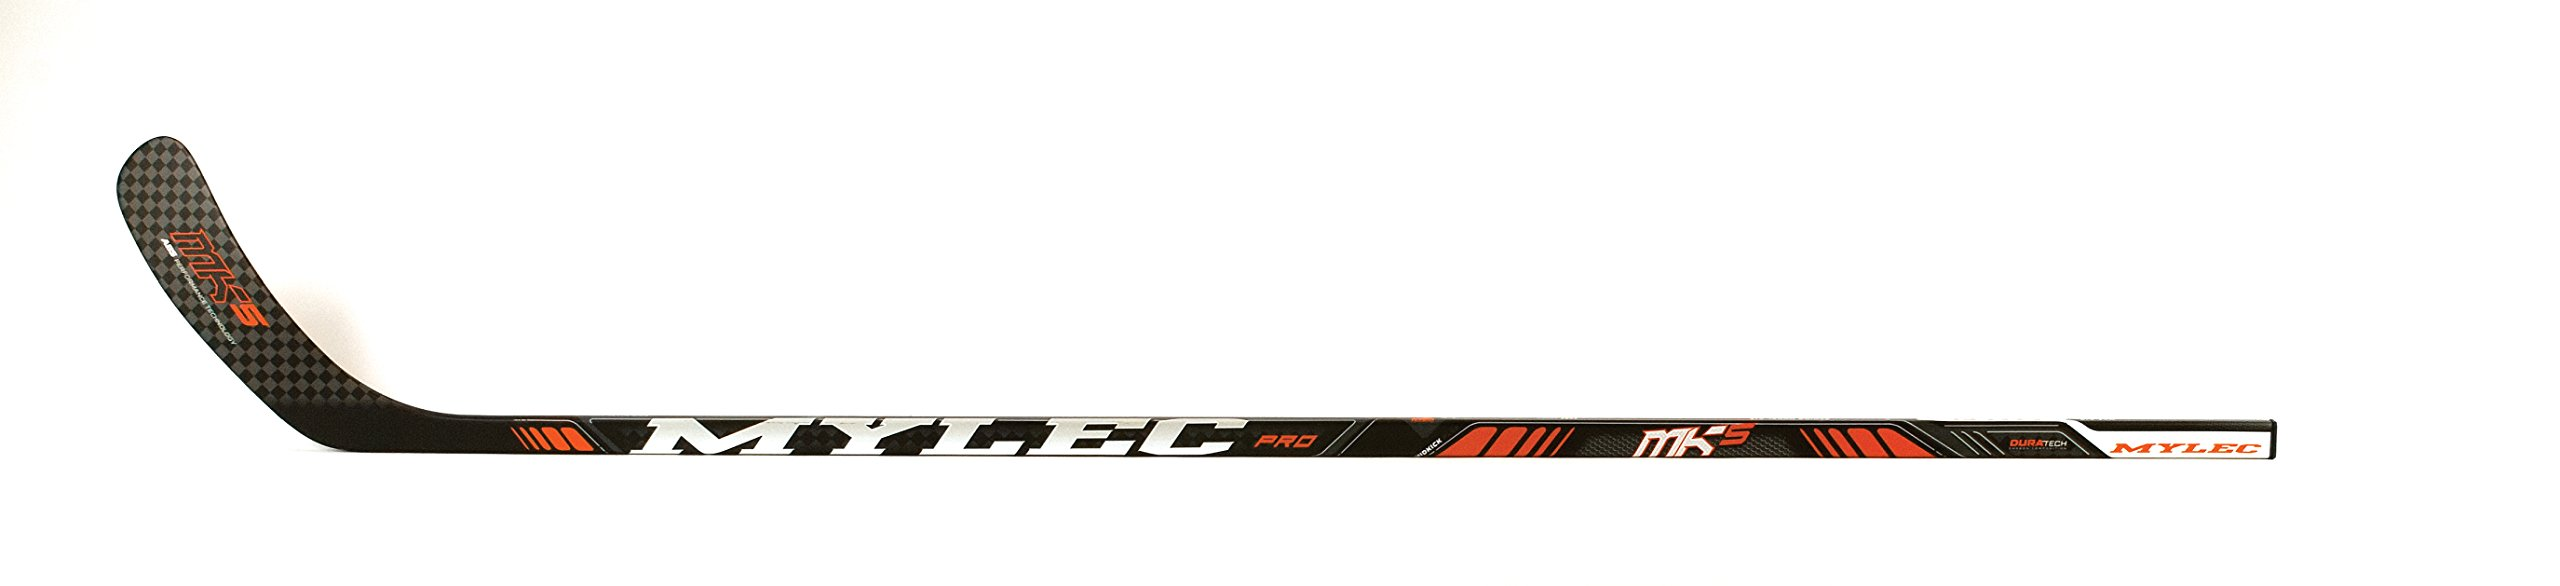 Mylec Nk5 Hockey Stick N61 Curve Left Hand MK5 Hockey Stick, Black by Myles